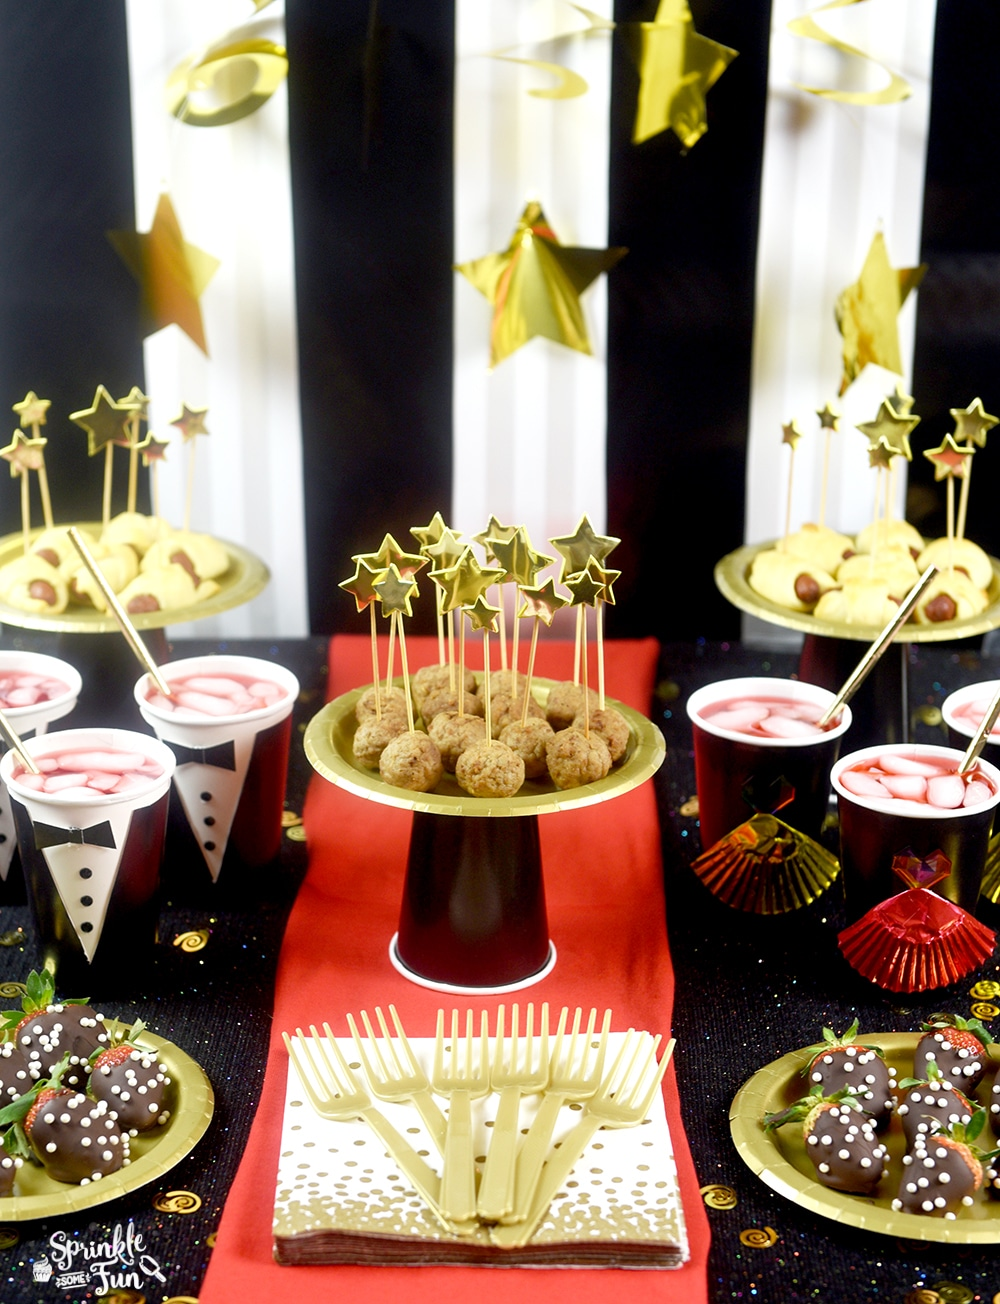 5 Easy Oscar Party Ideas Sprinkle Some Fun